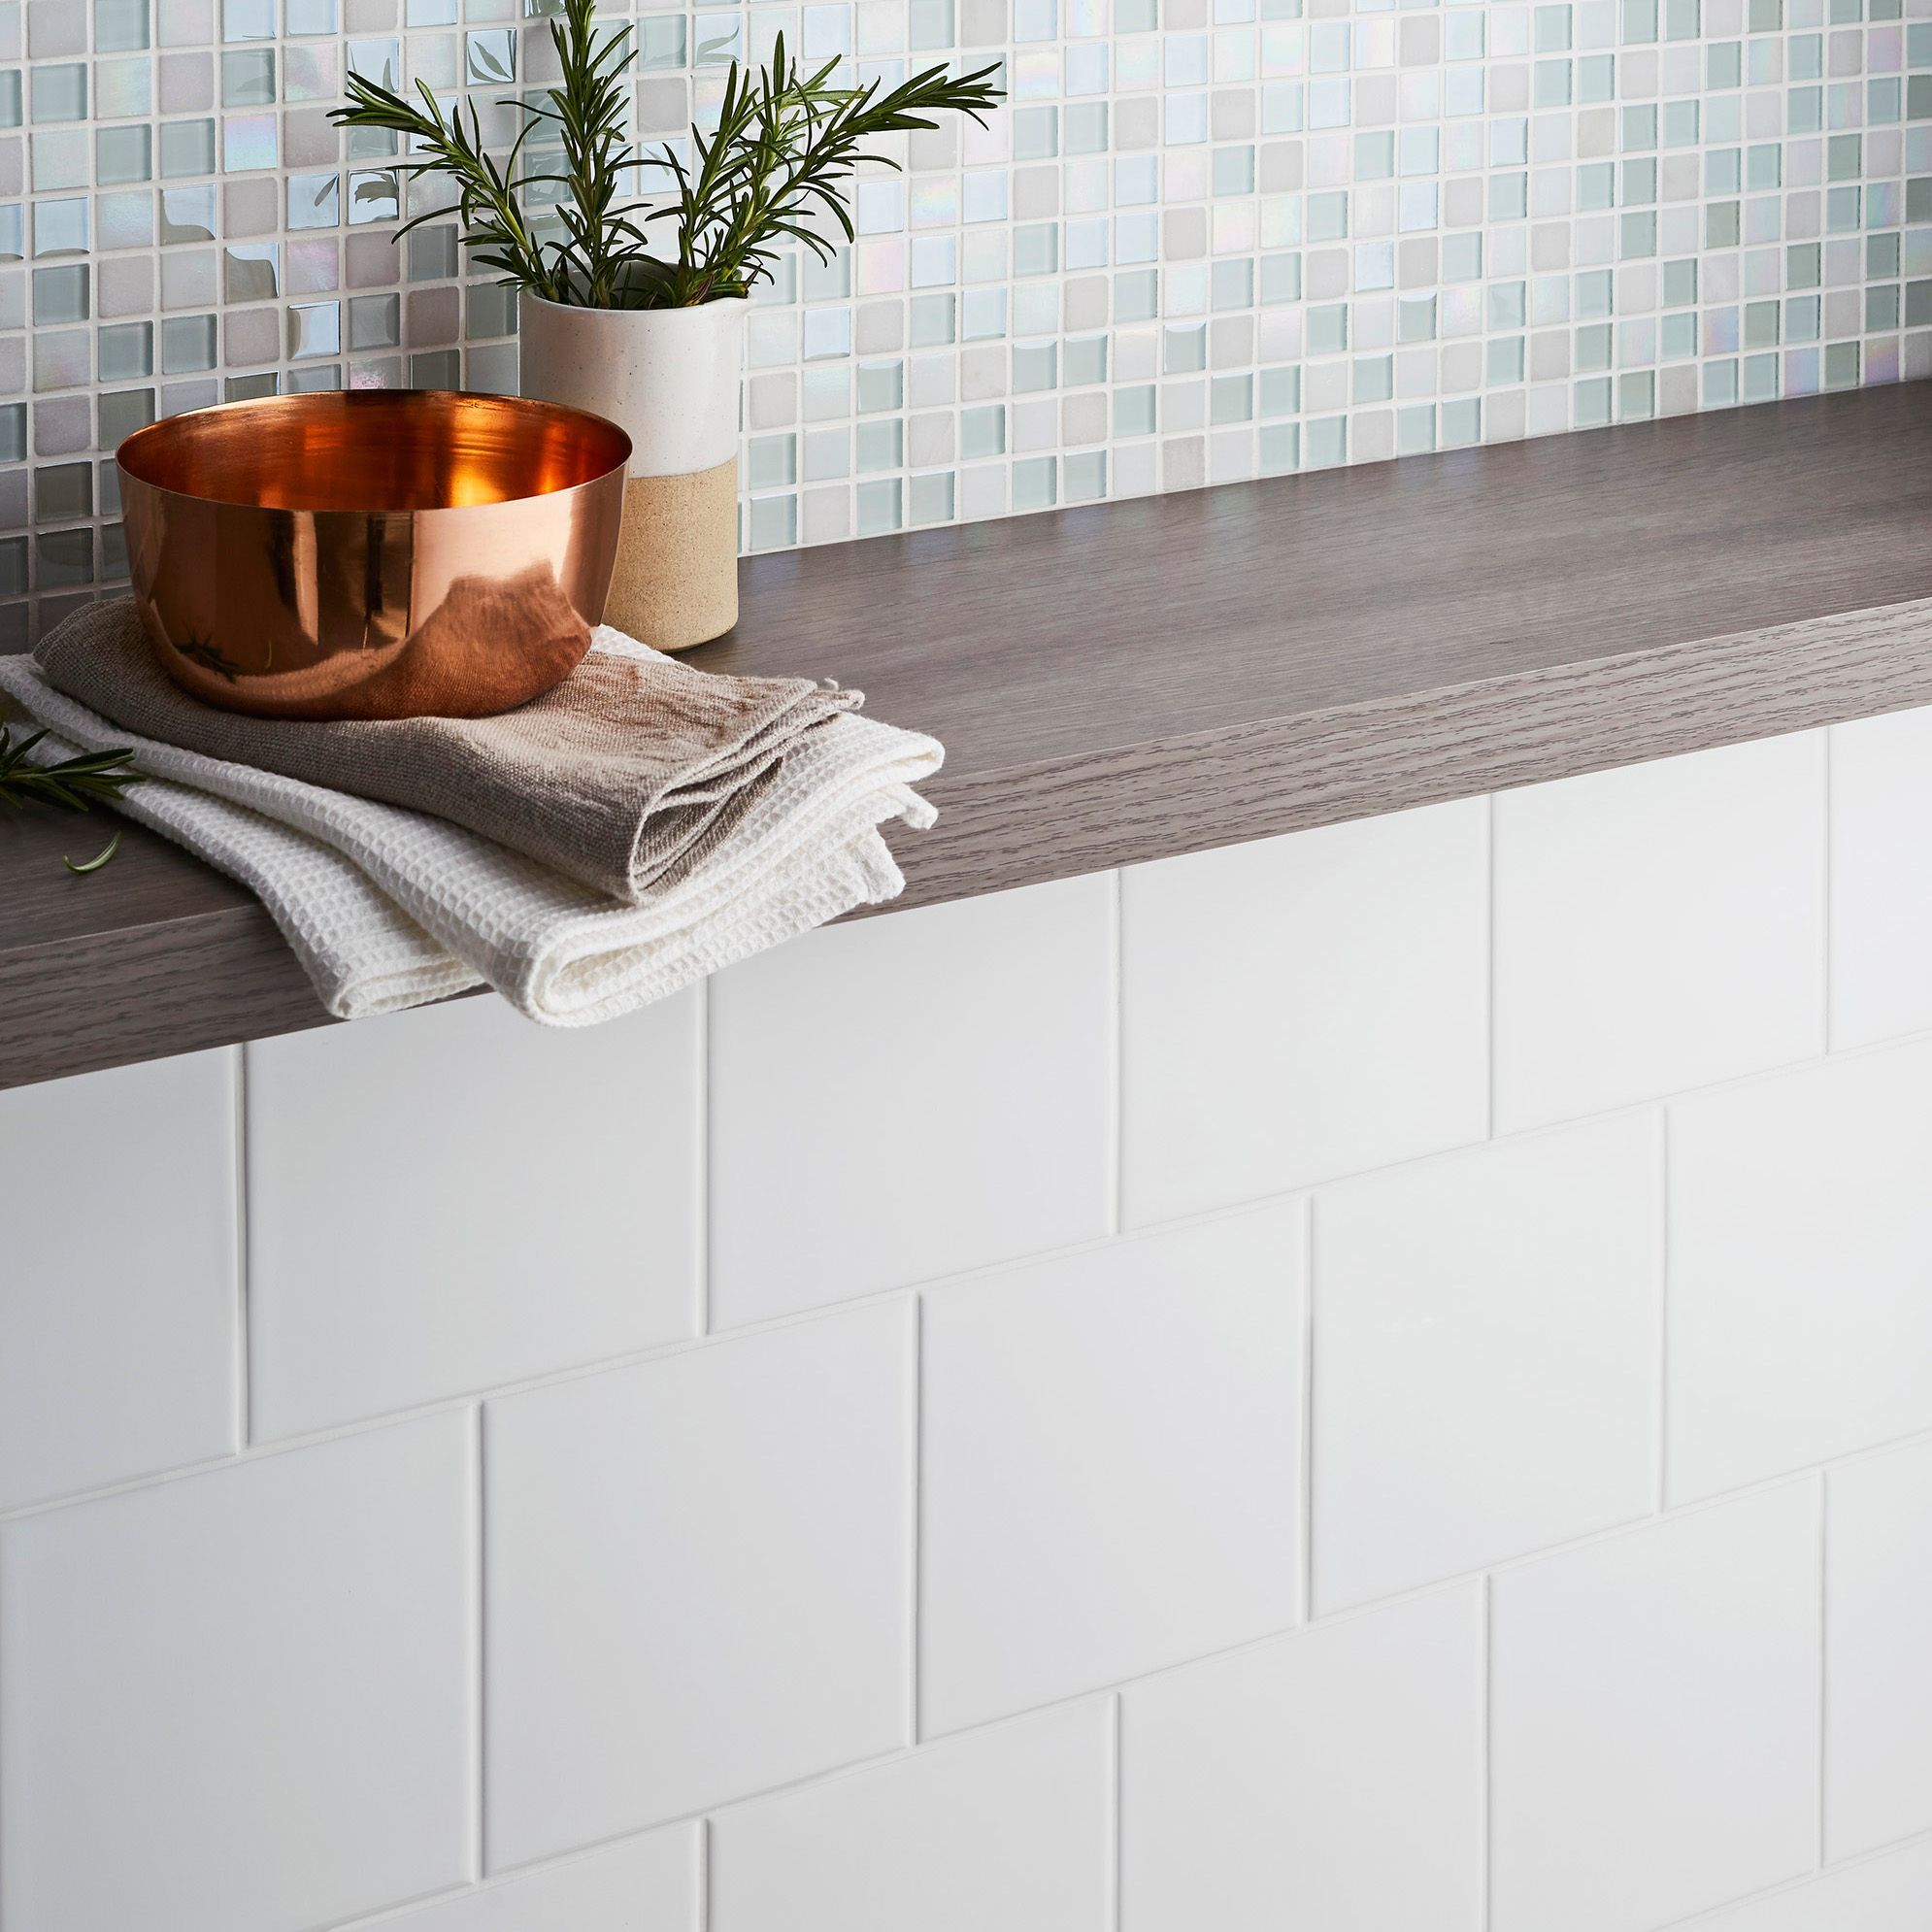 Leccia White Gloss Ceramic Wall Tile Pack Of 44 L 150mm W